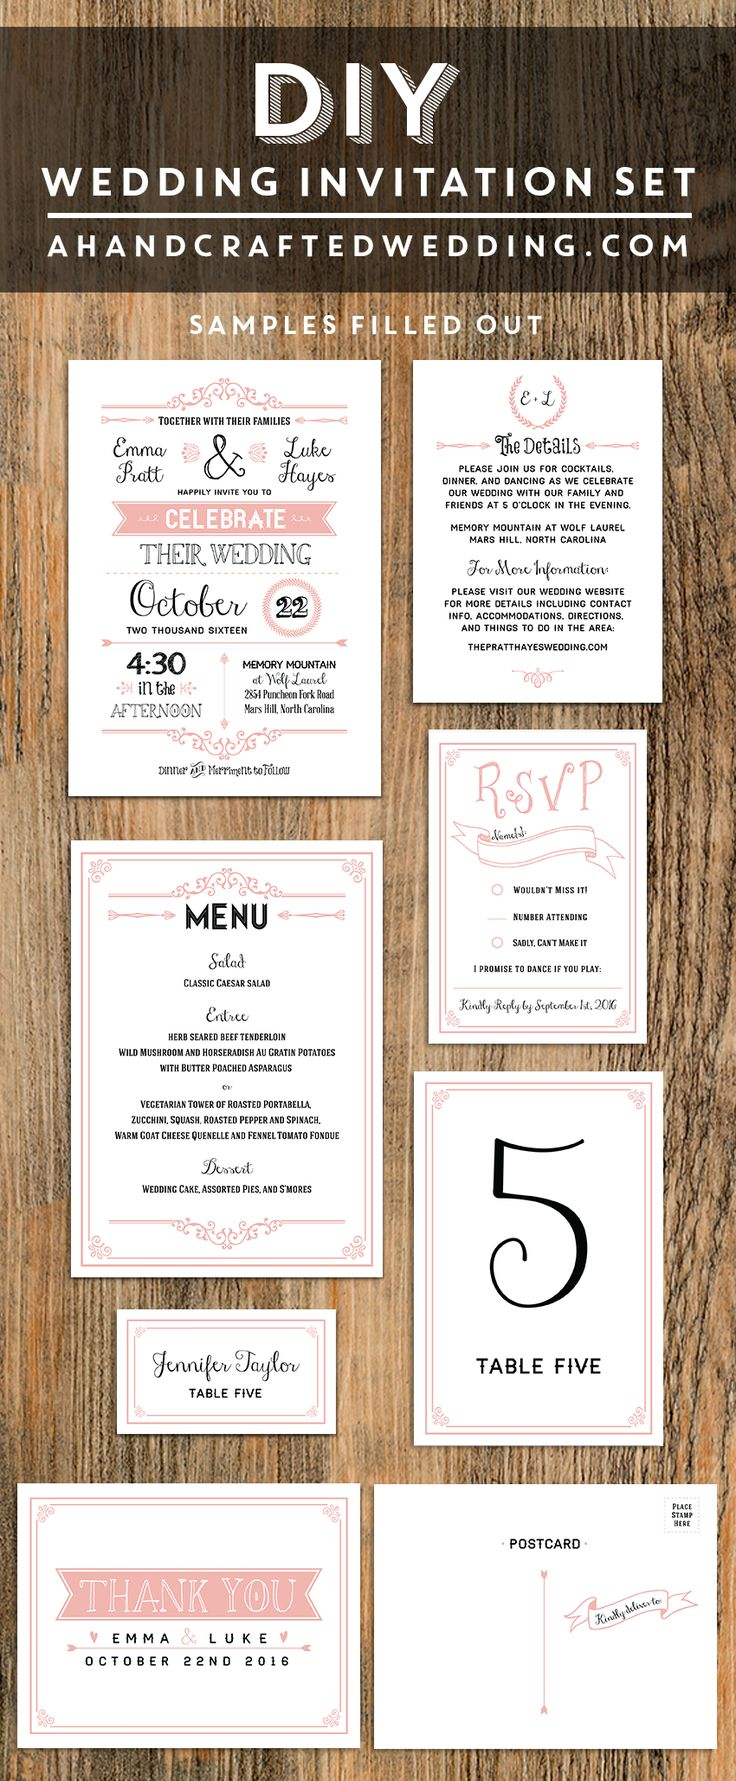 custom wedding invitations nashville%0A Printable Blush Pink Wedding Invitation Set